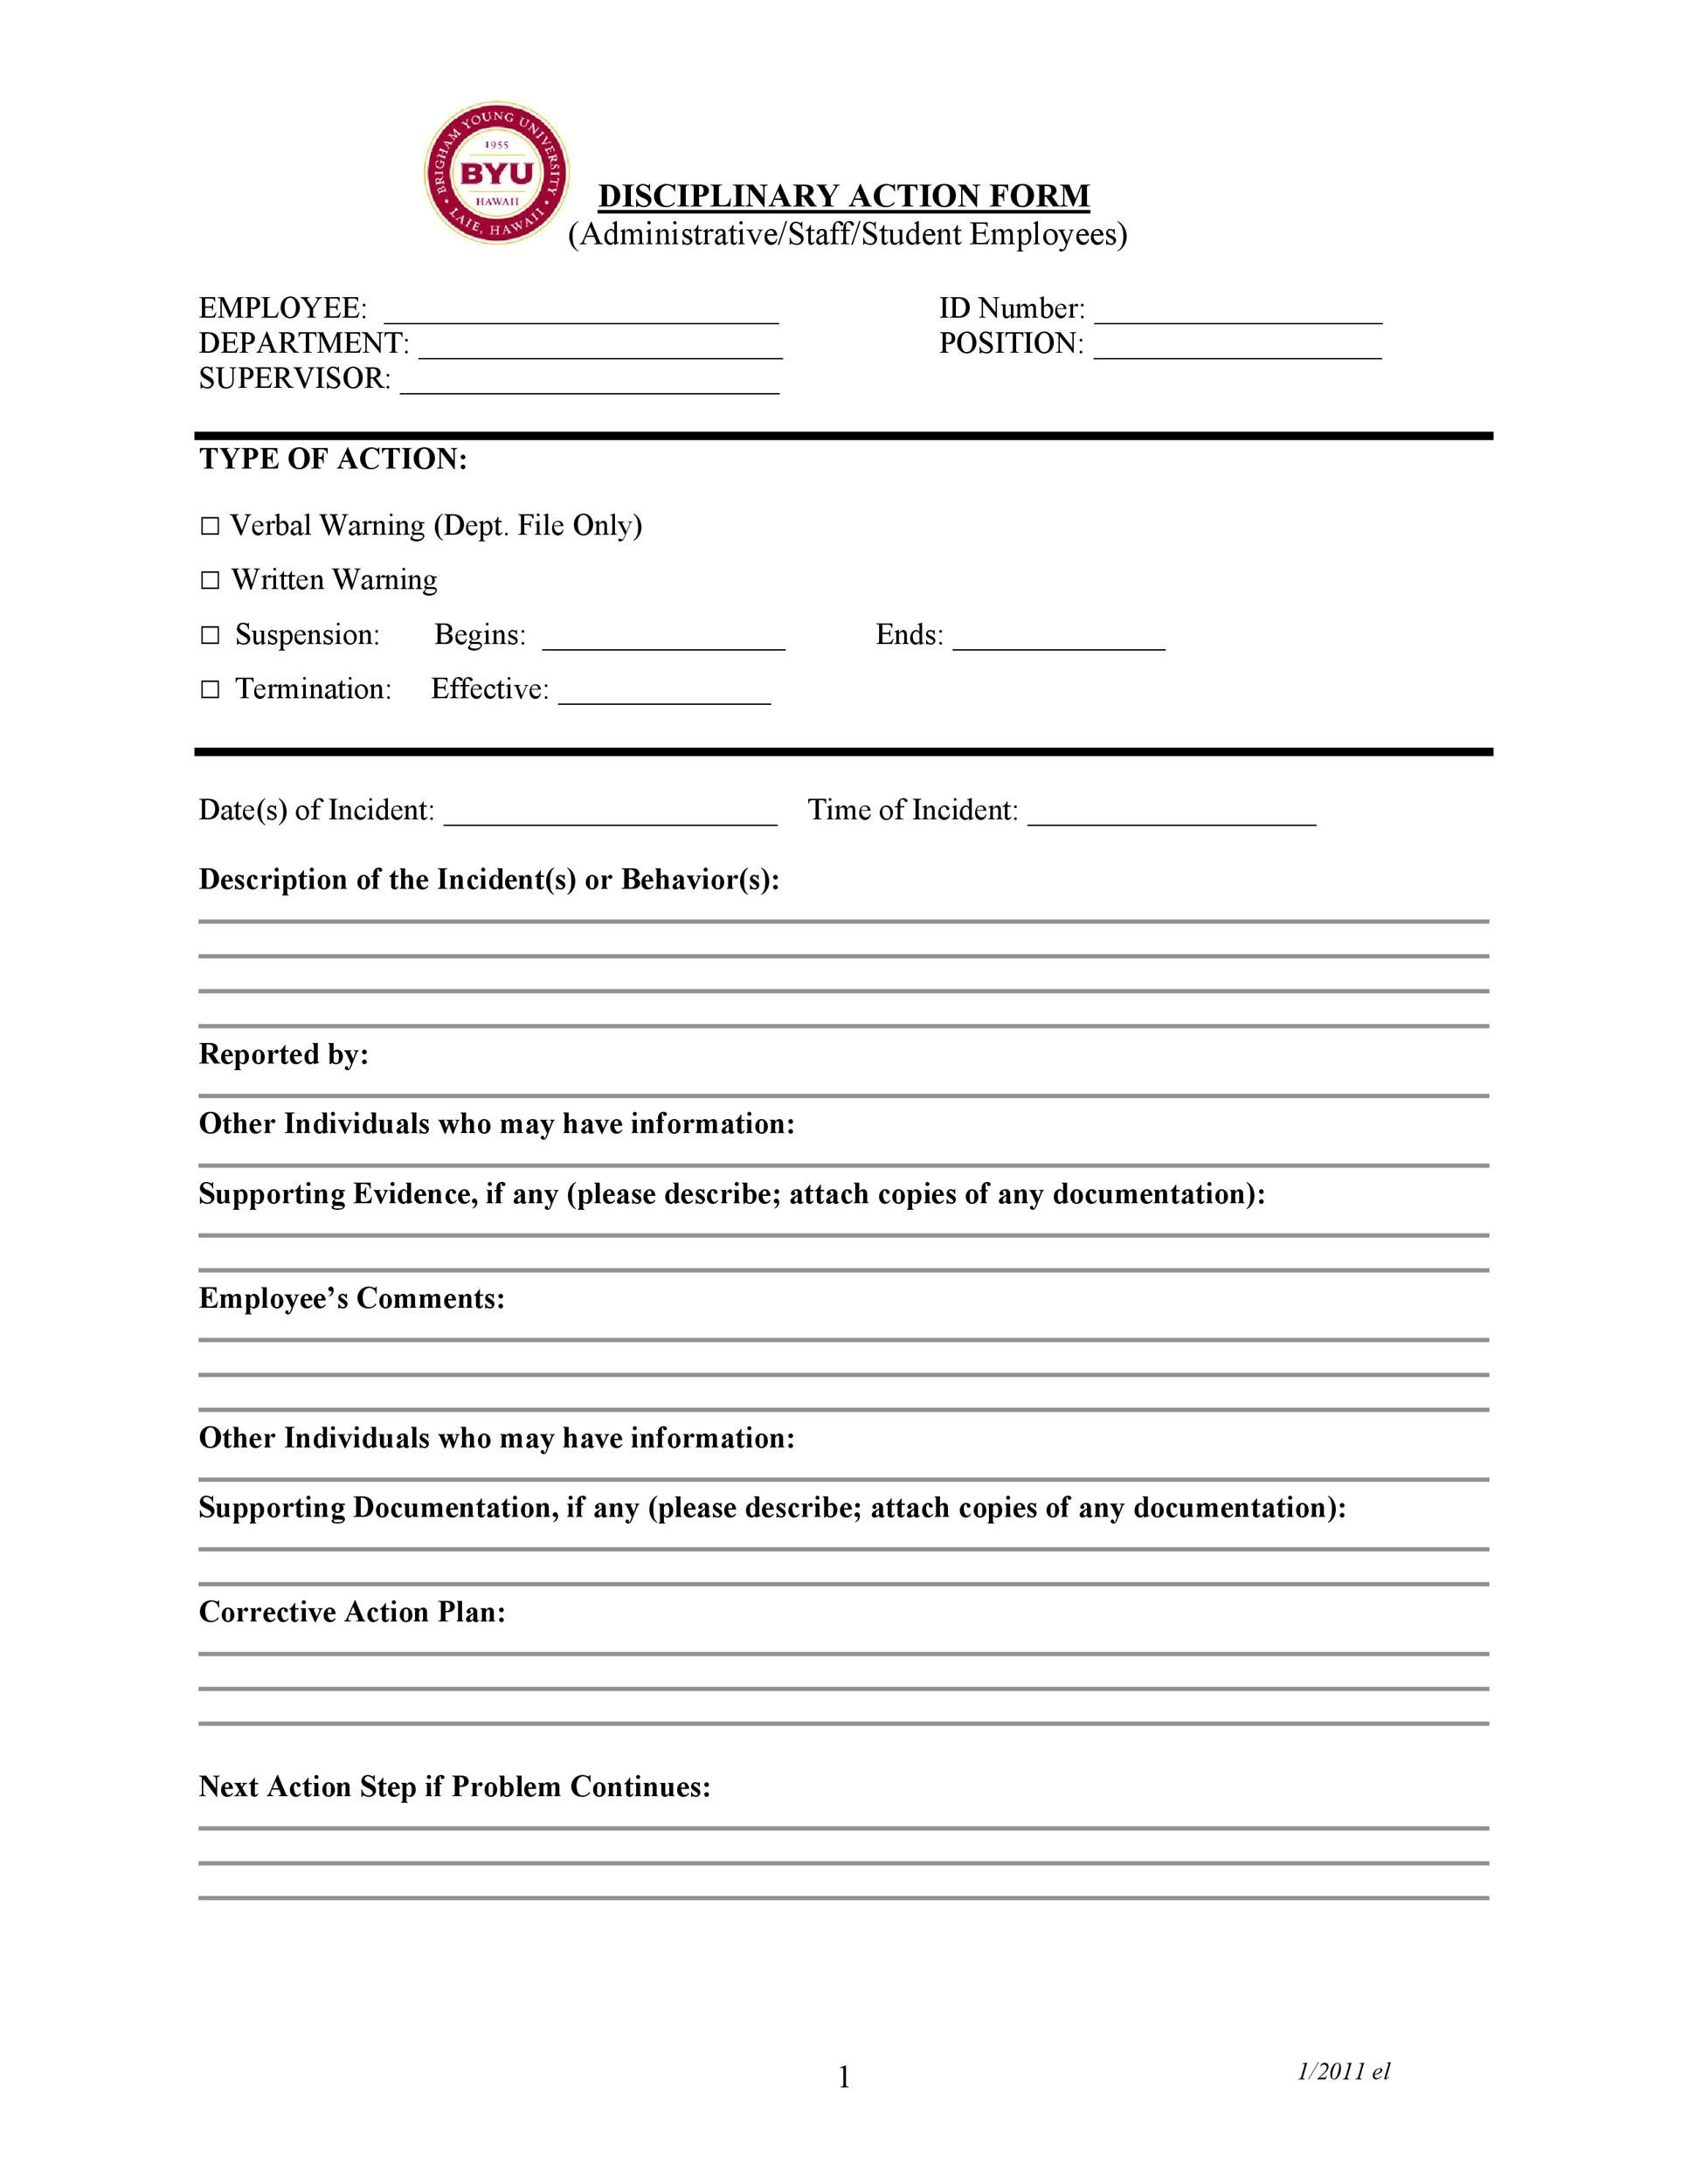 Disciplinary Memo Template 23+ hr warning letters - free sample - disciplinary memo template